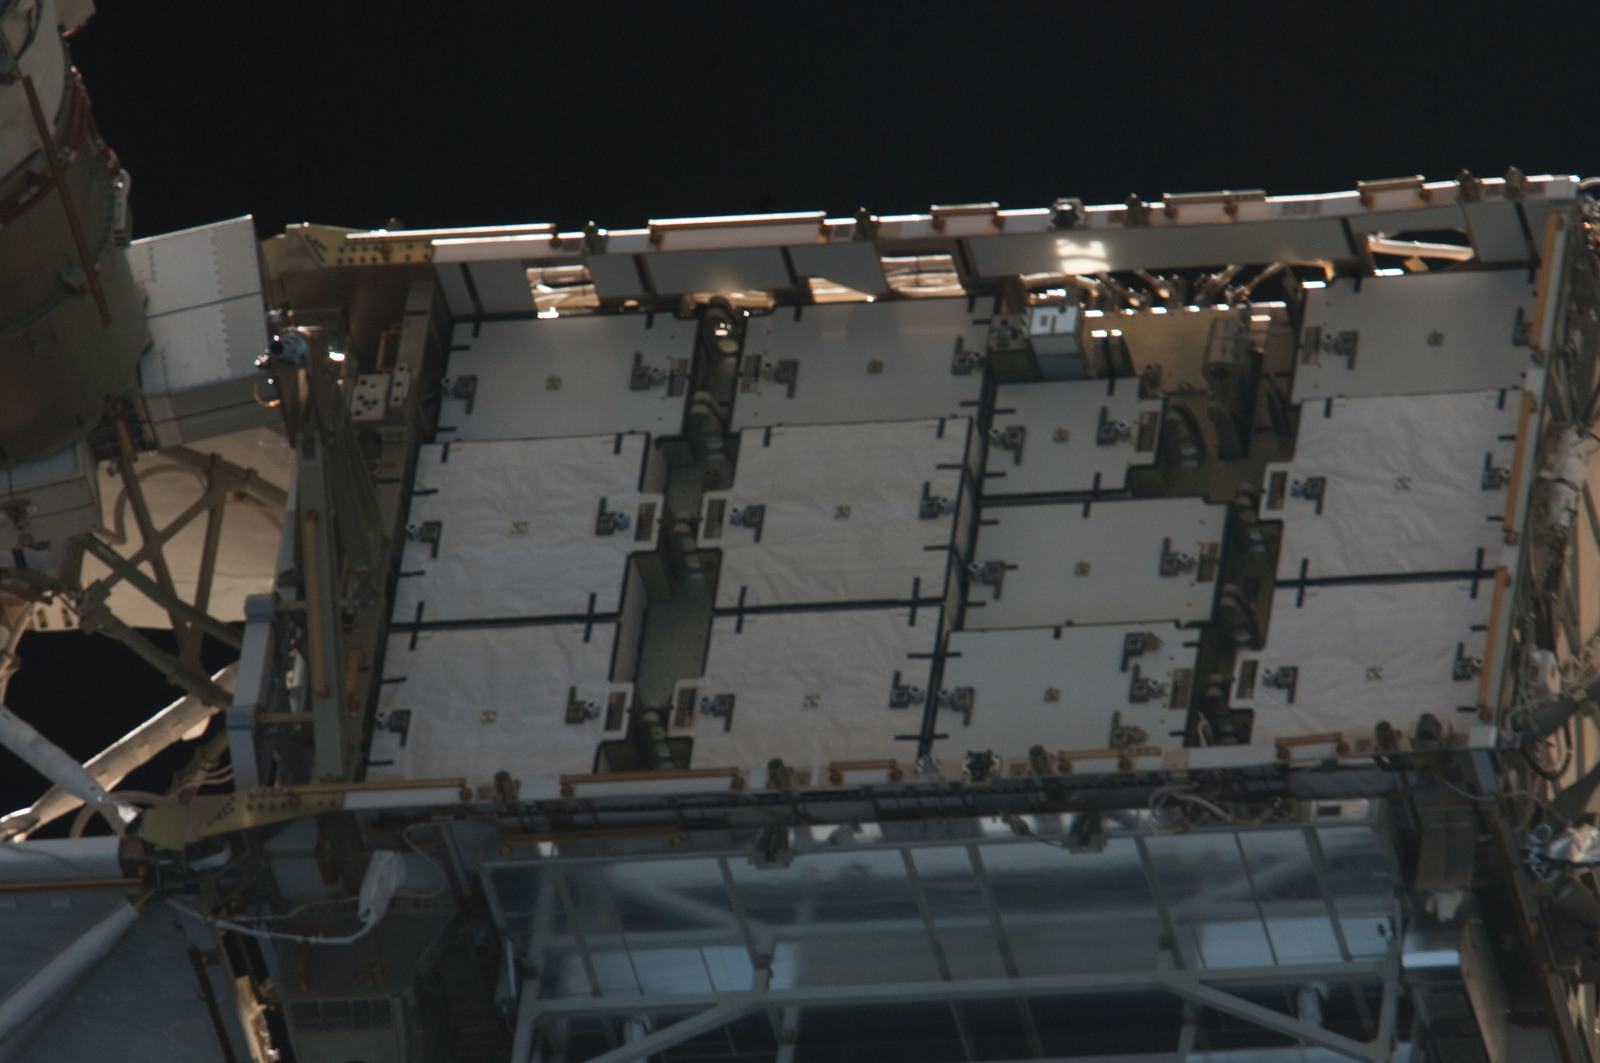 S134E011383 - STS-134 - Close-up view of Port Side Truss Segments